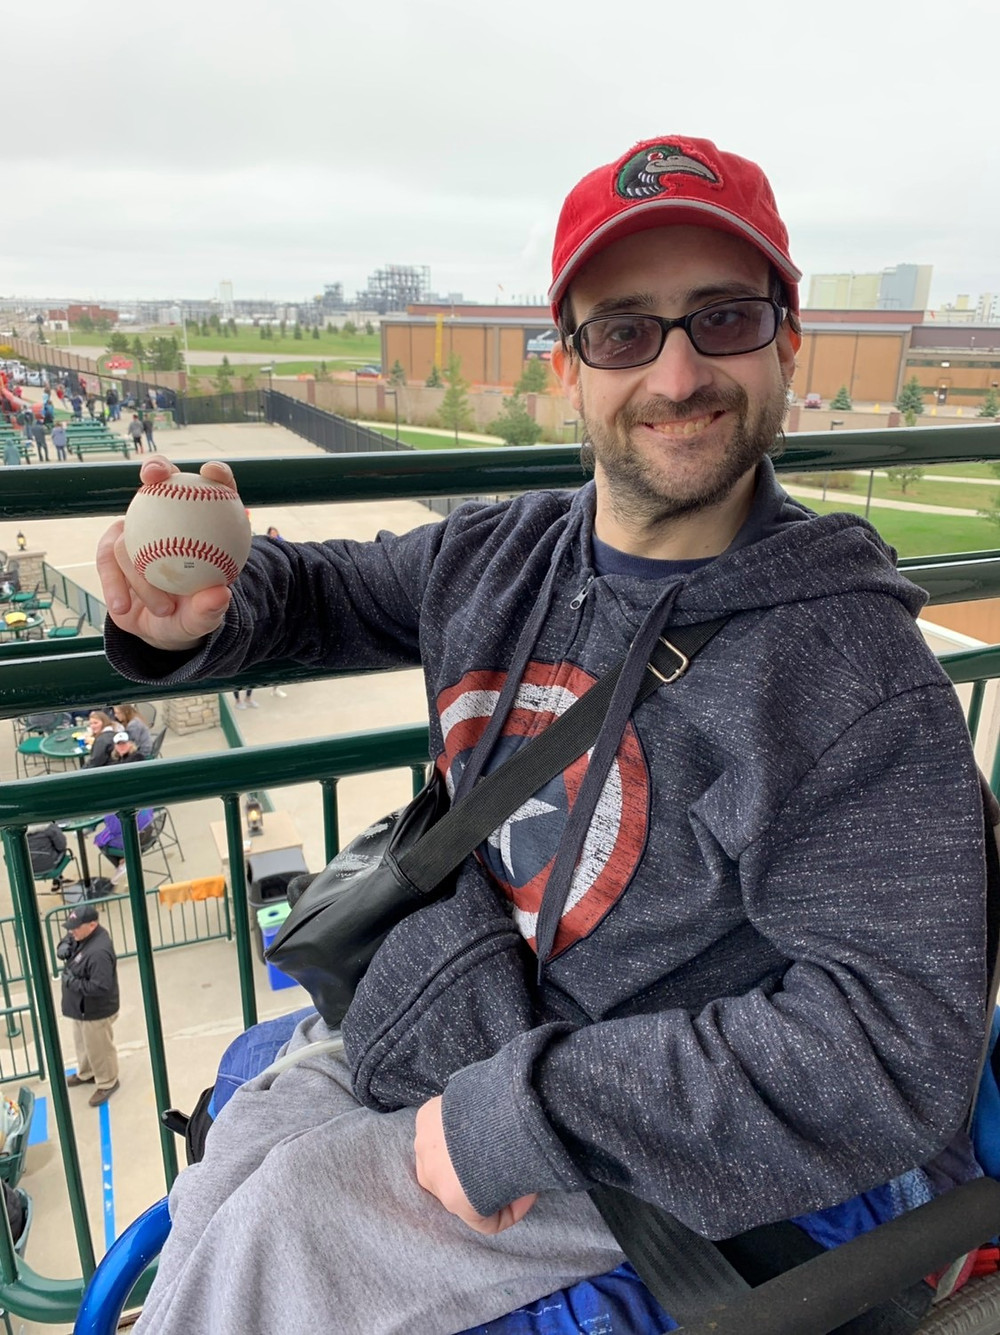 DNMM consumer holding baseball at Great Lakes Loons baseball game